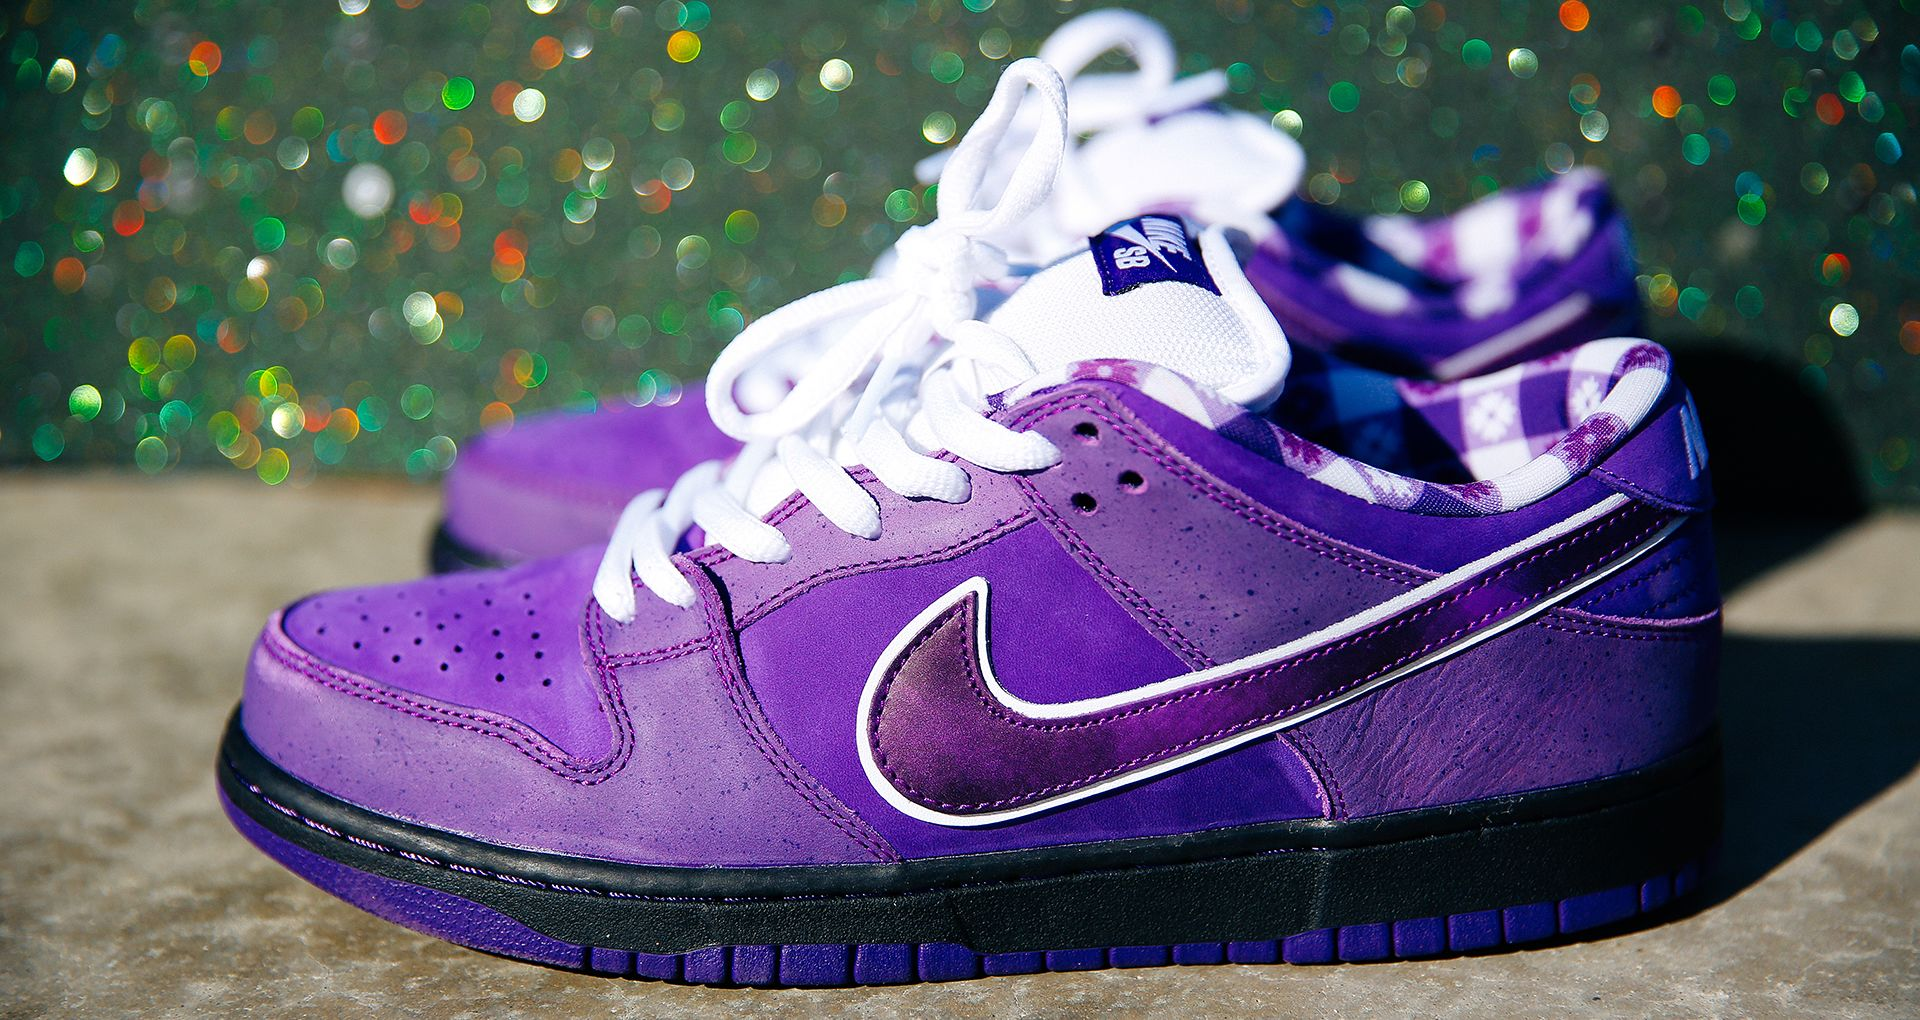 detailed pictures sneakers for cheap cheapest Nike SB Dunk Low Pro 'Purple Lobster' Release Date. Nike SNKRS